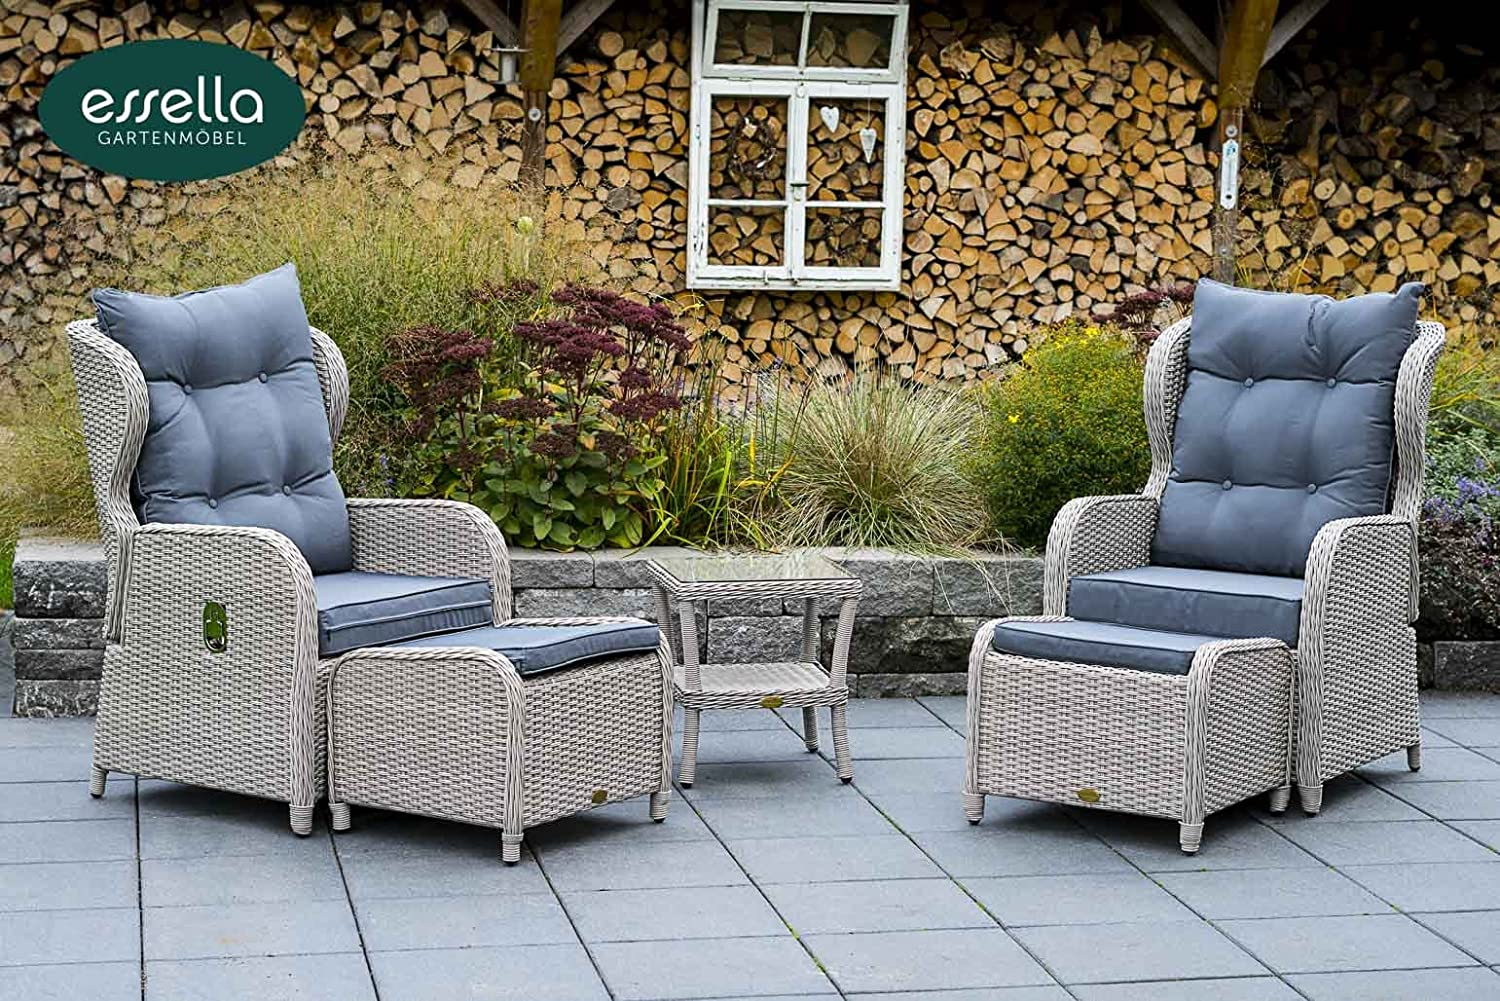 polyrattan lounge panama 2 personen rundgeflecht vintage weiss gartenm bel terassenm bel. Black Bedroom Furniture Sets. Home Design Ideas